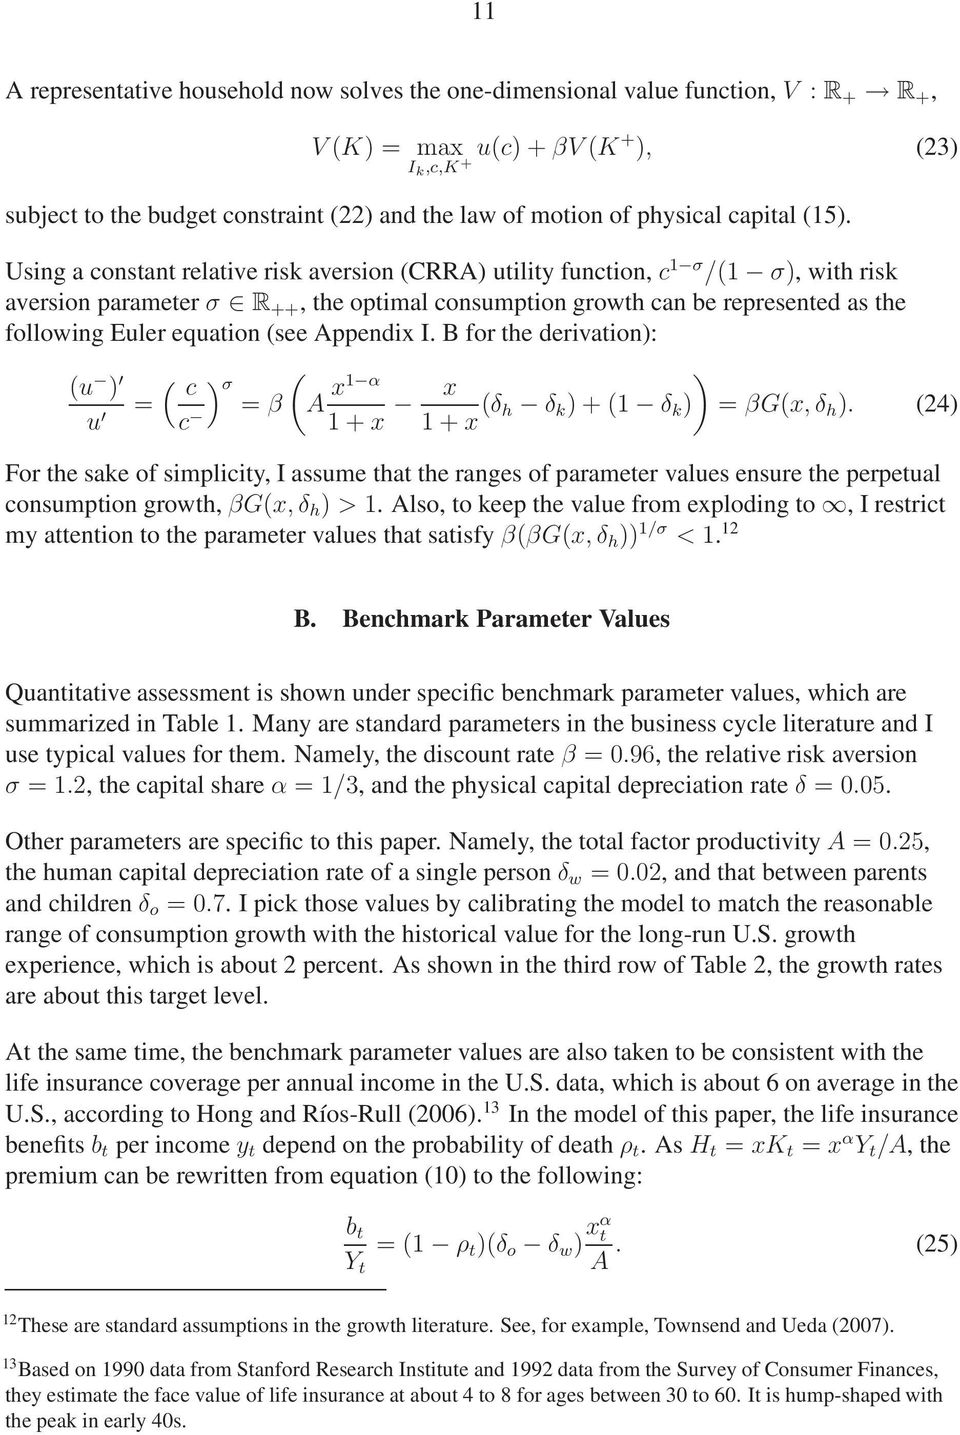 Using a constant relative risk aversion (CRRA) utility function, c 1 σ /(1 σ), with risk aversion parameter σ R ++, the optimal consumption growth can be represented as the following Euler equation